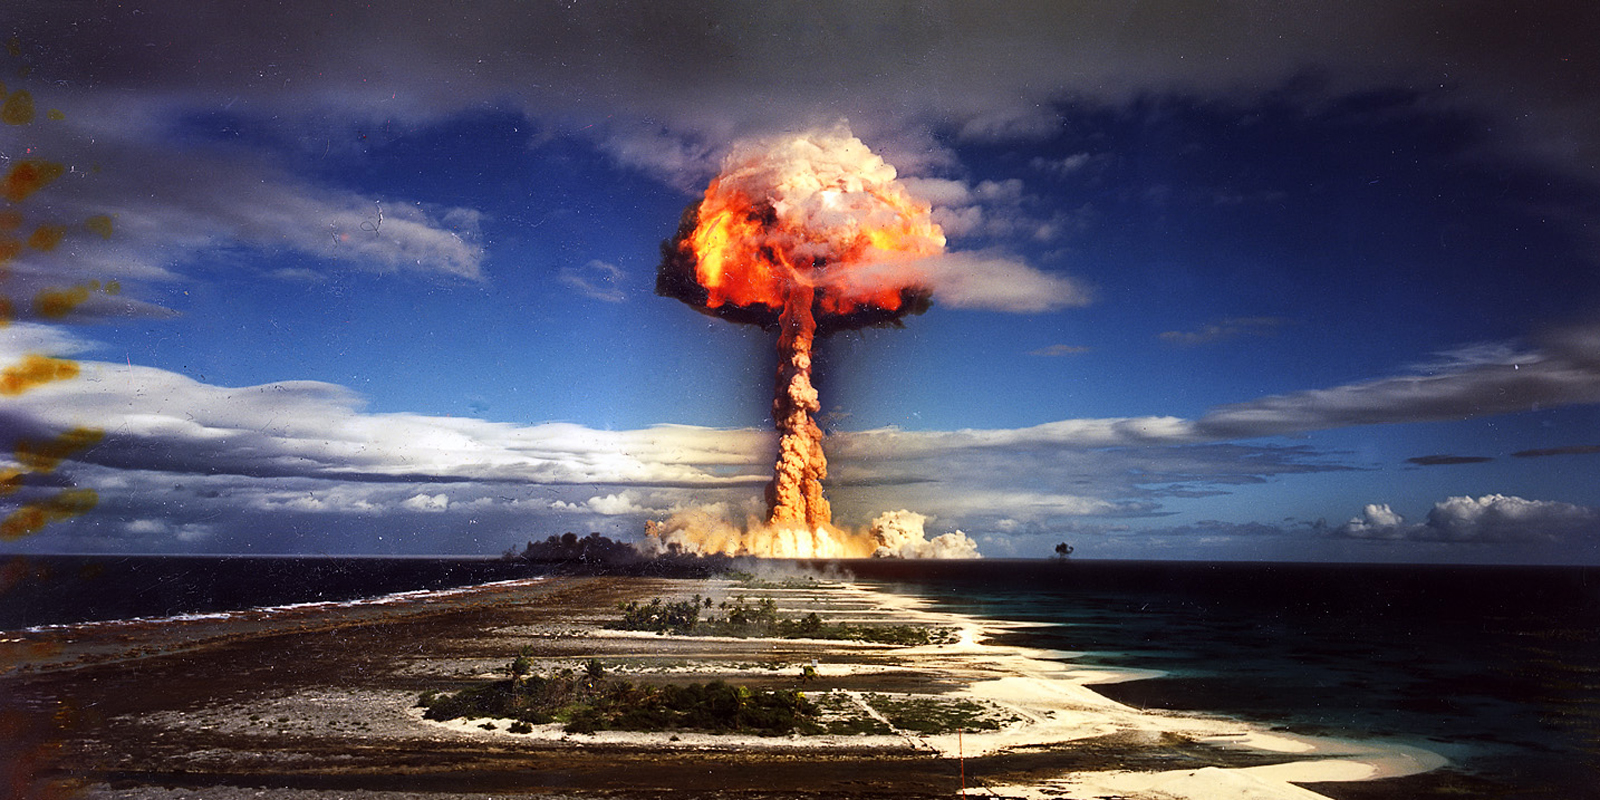 French government's test of the Licorne thermonuclear weapon, Mururoa atoll, French Polynesia, 1970, via Flickr userPierre J.